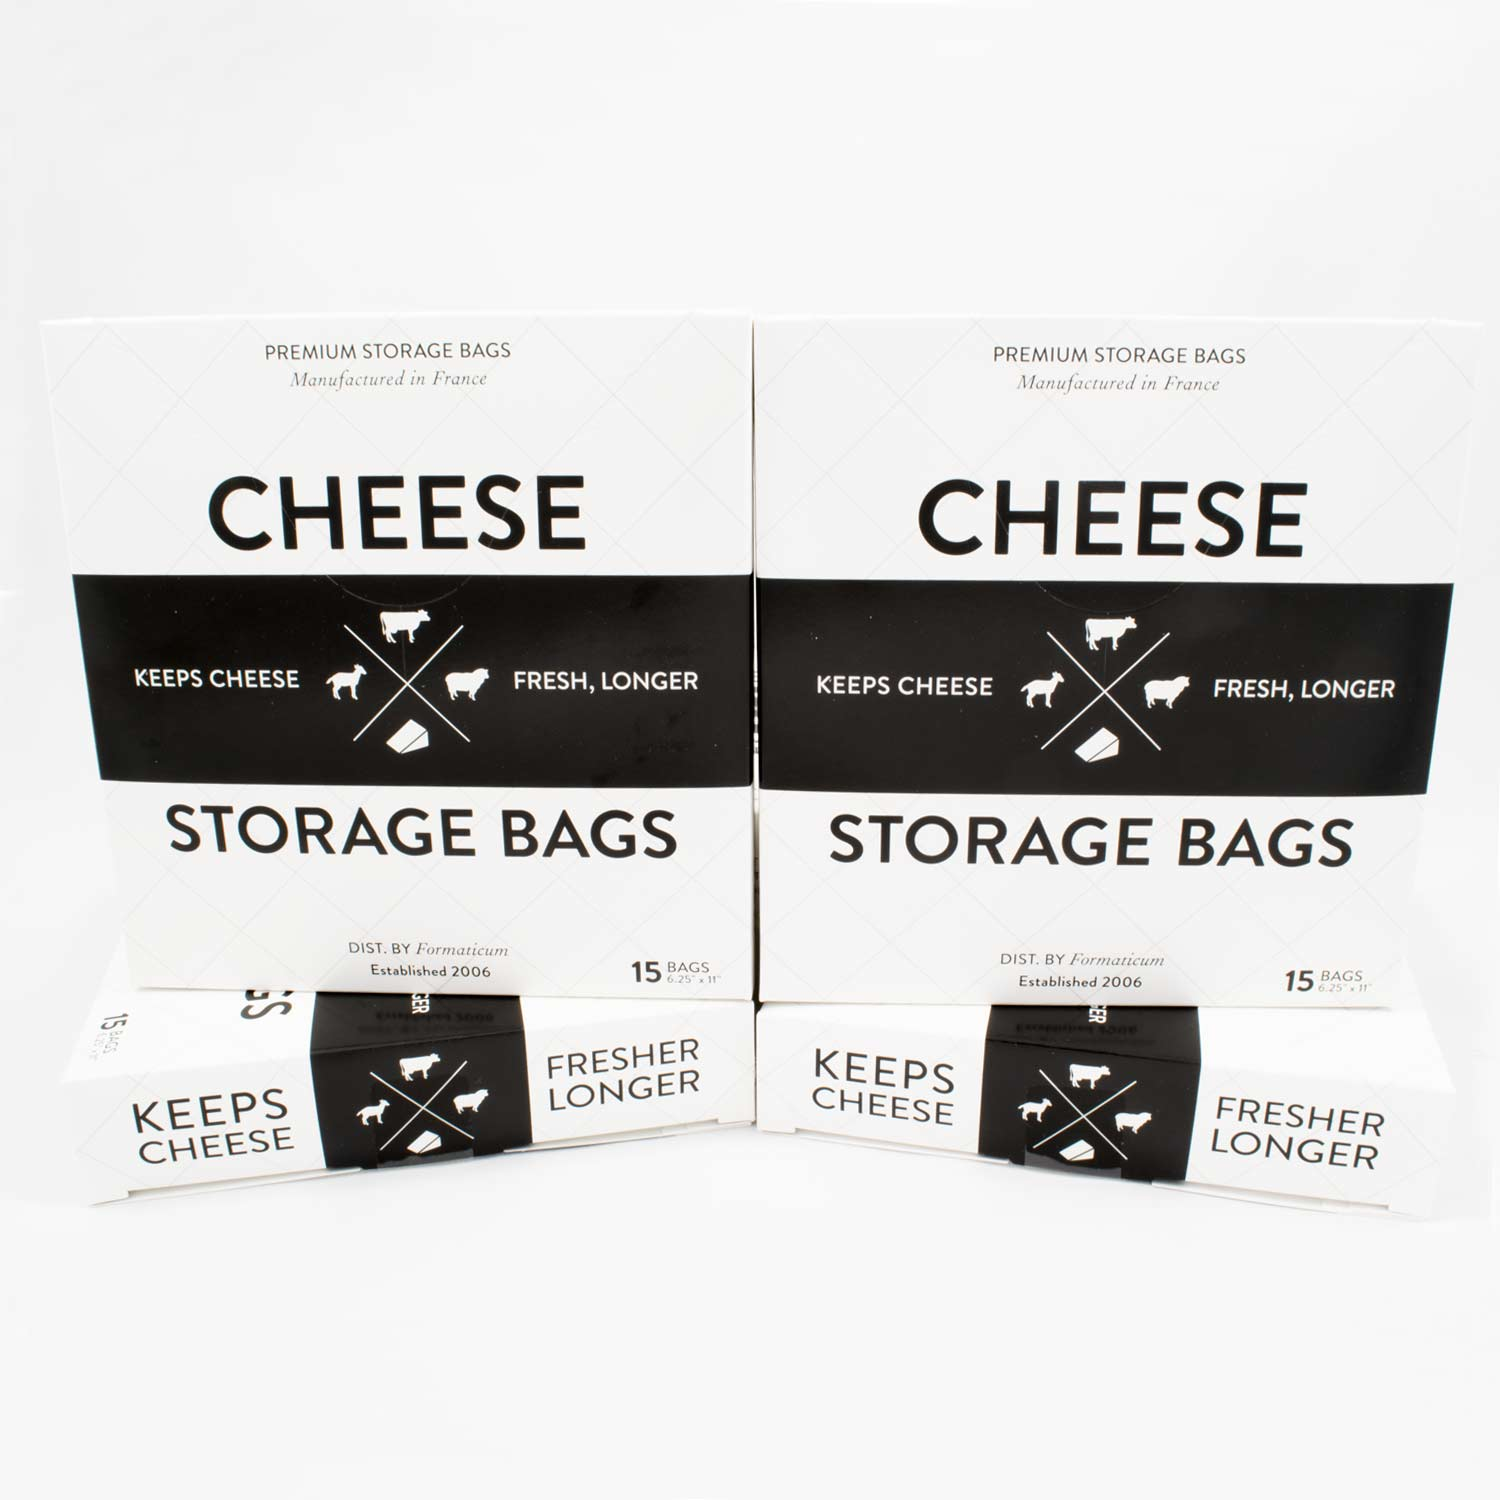 Cheese-Storage-Bags.jpg